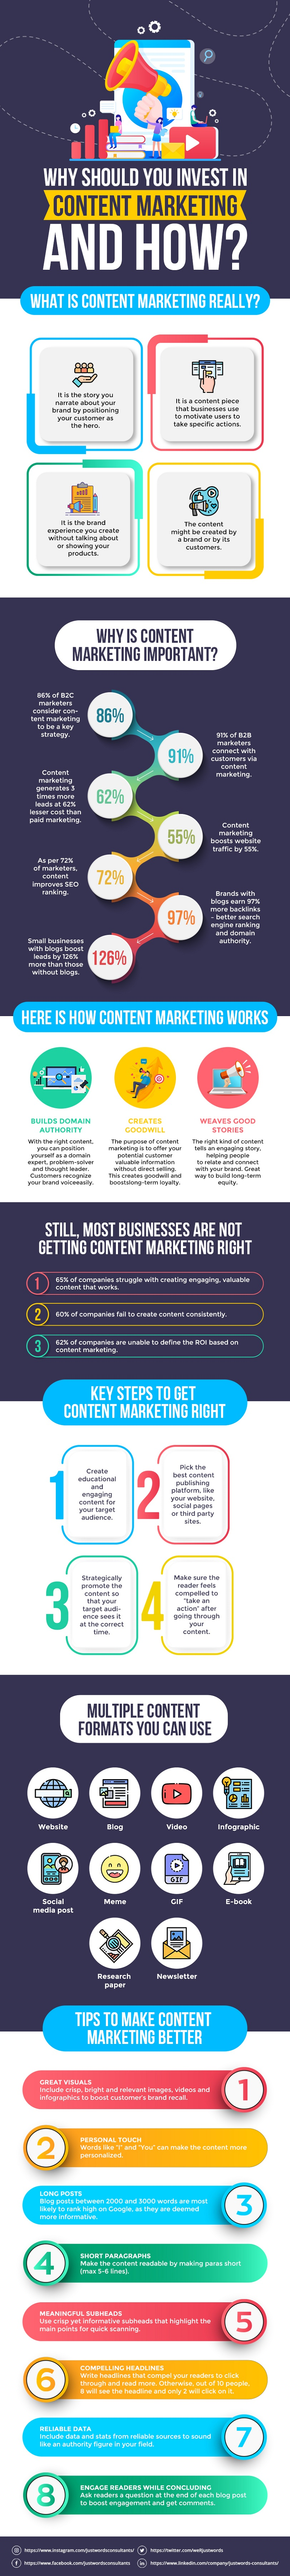 Why should you invest in content marketing and how